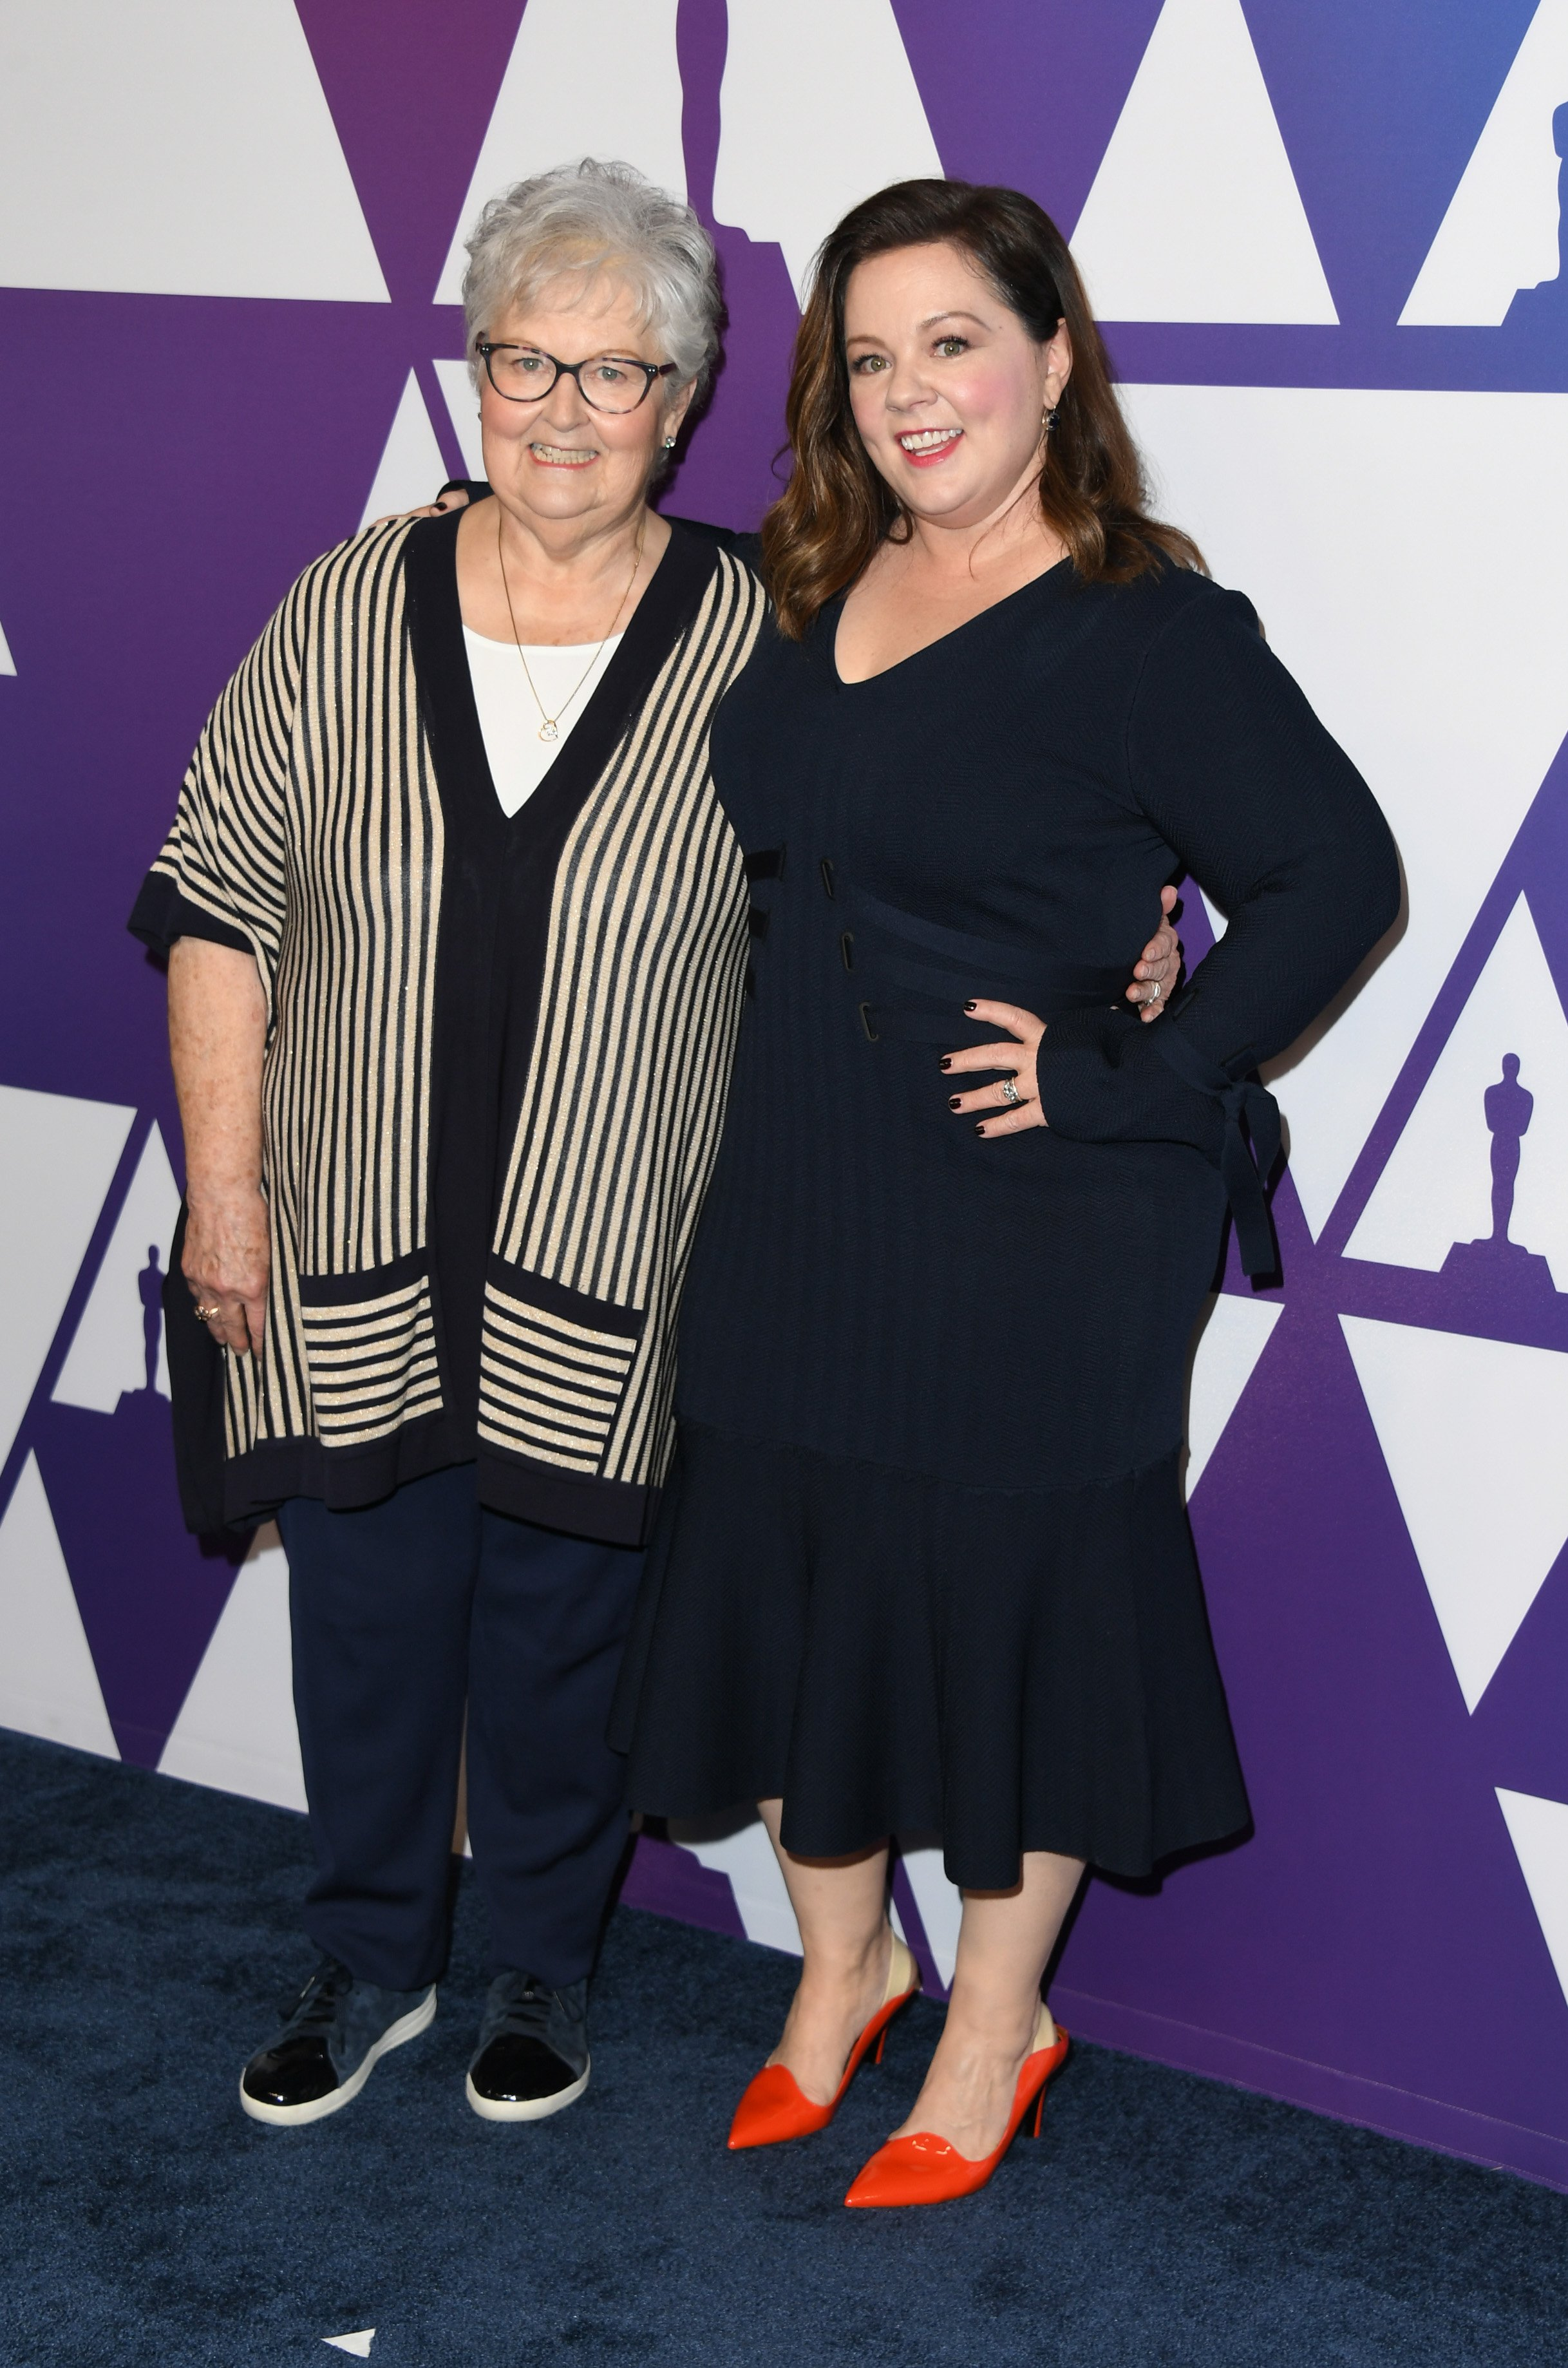 Melissa McCarthy and mother Sandra McCarthy at the 2019 Academy Awards | Photo: Getty Images